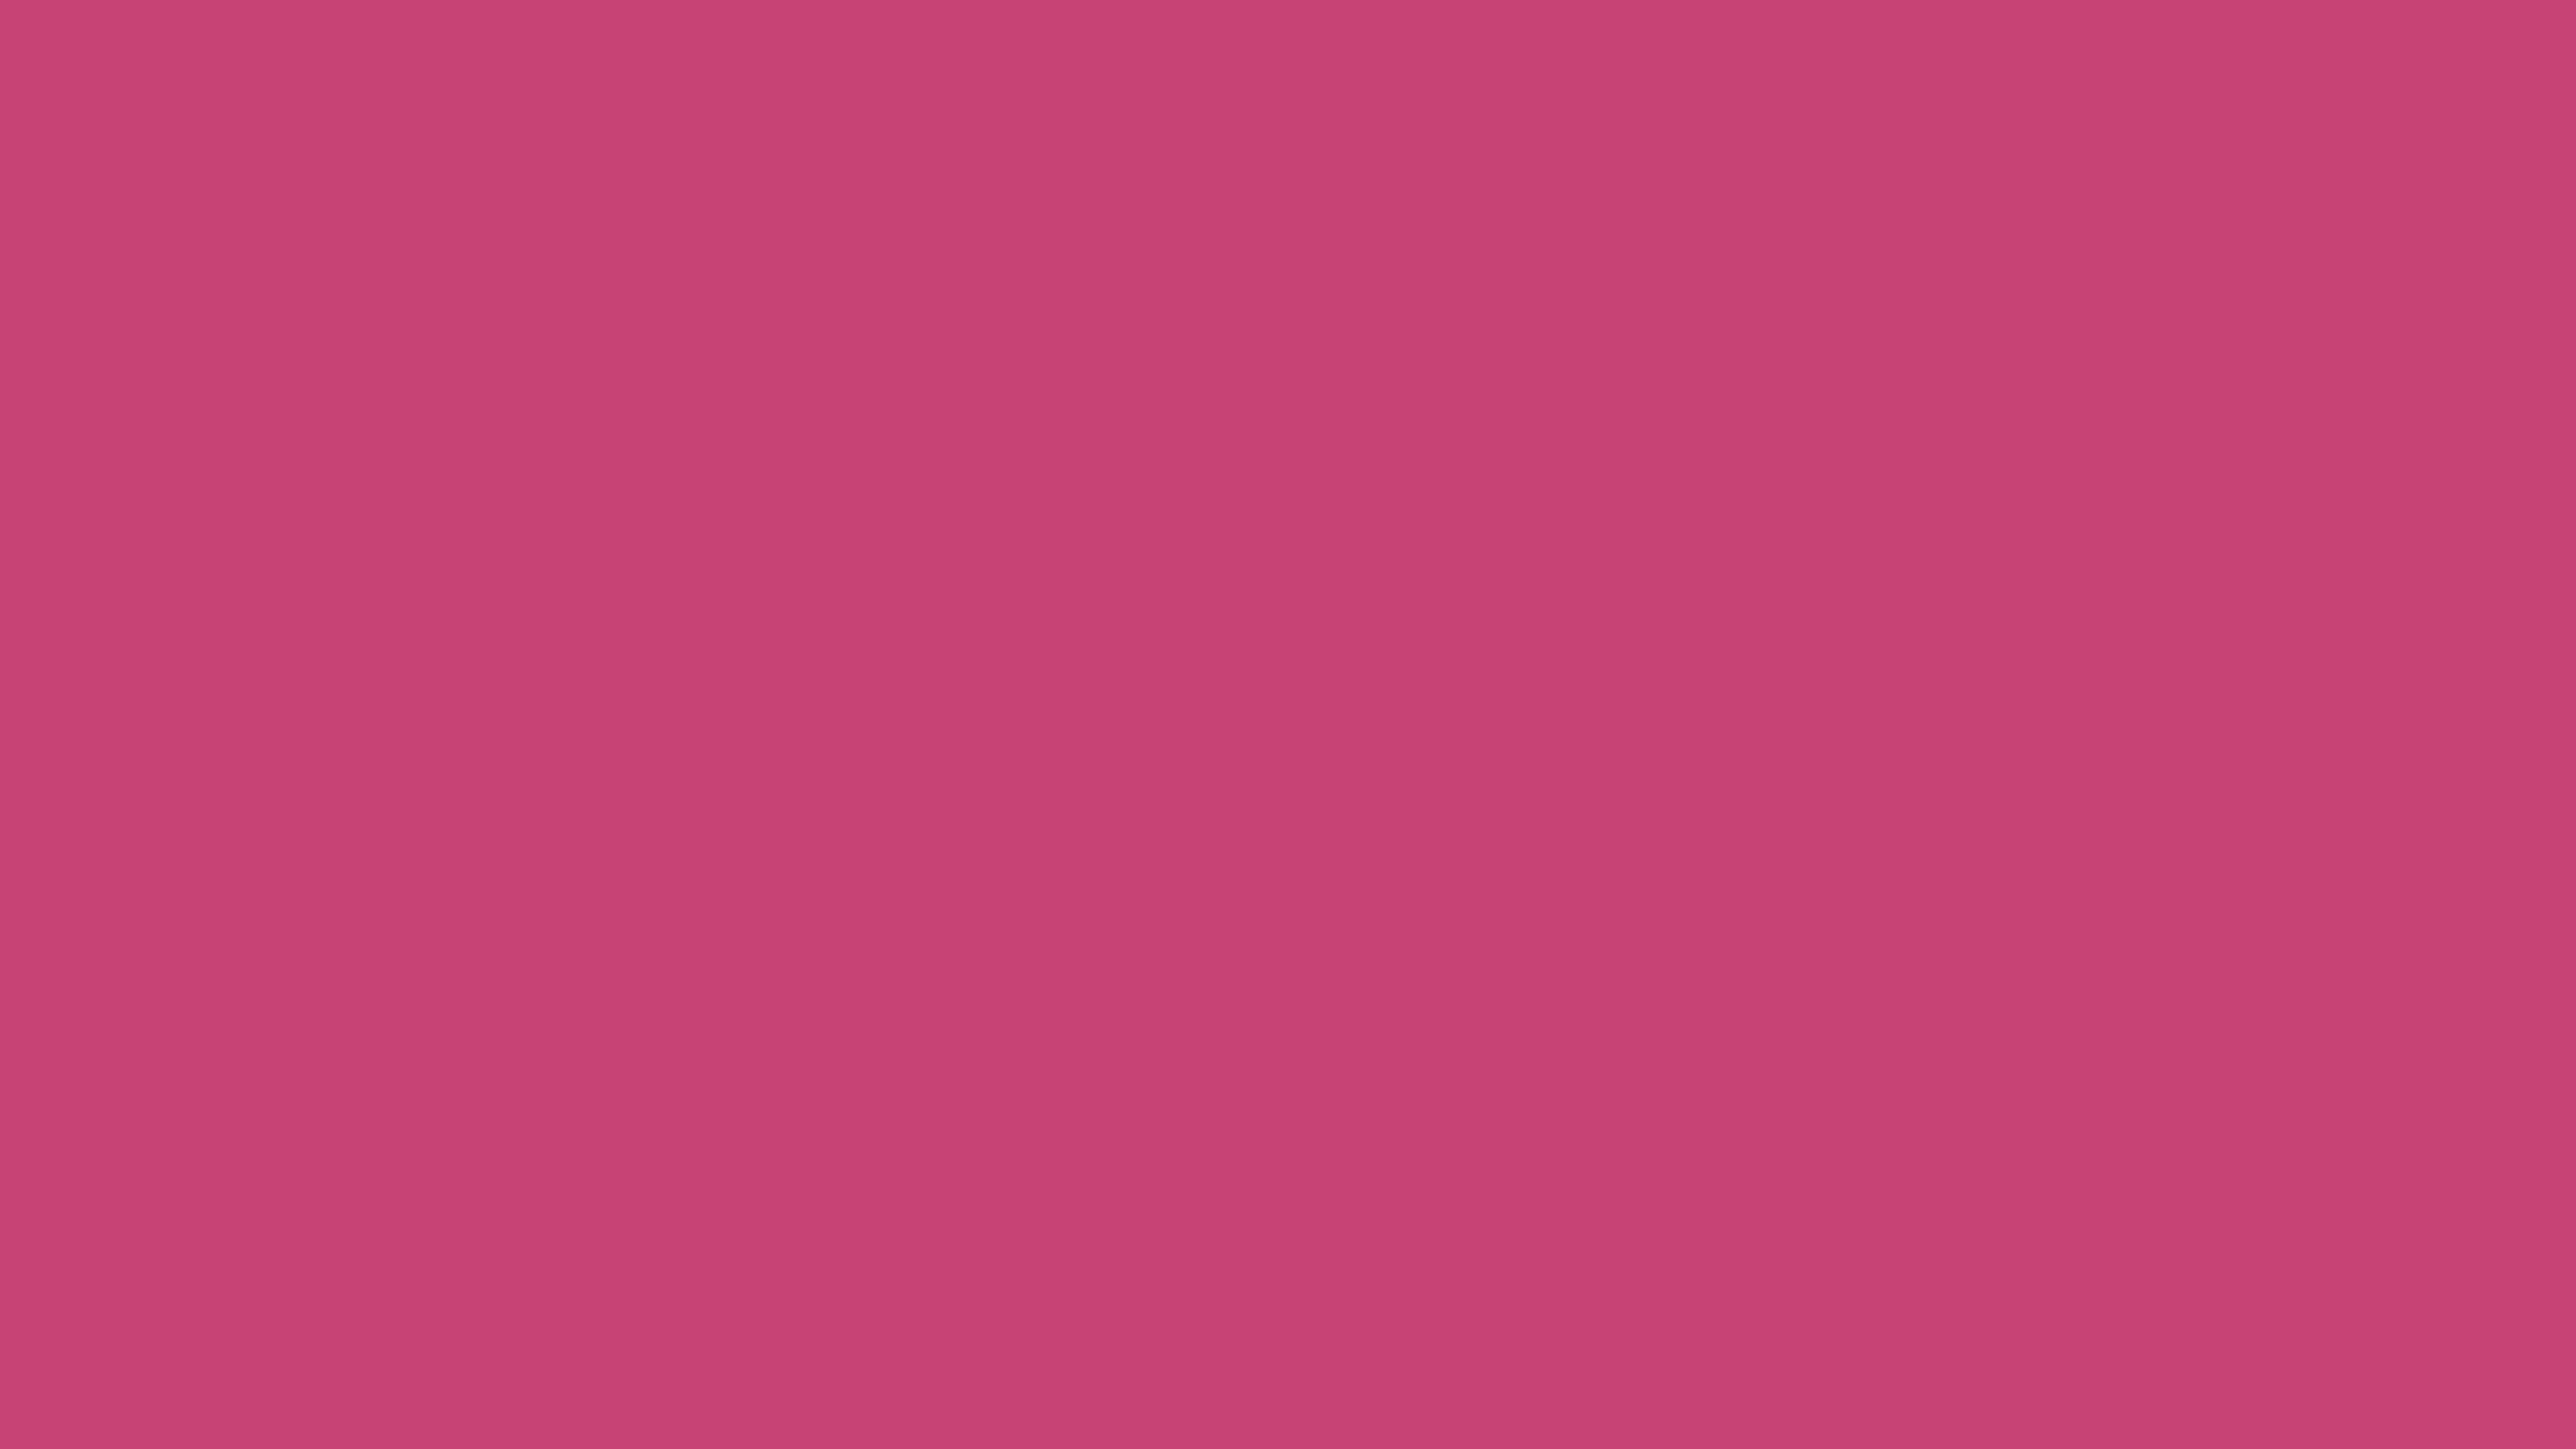 5120x2880 Fuchsia Rose Solid Color Background